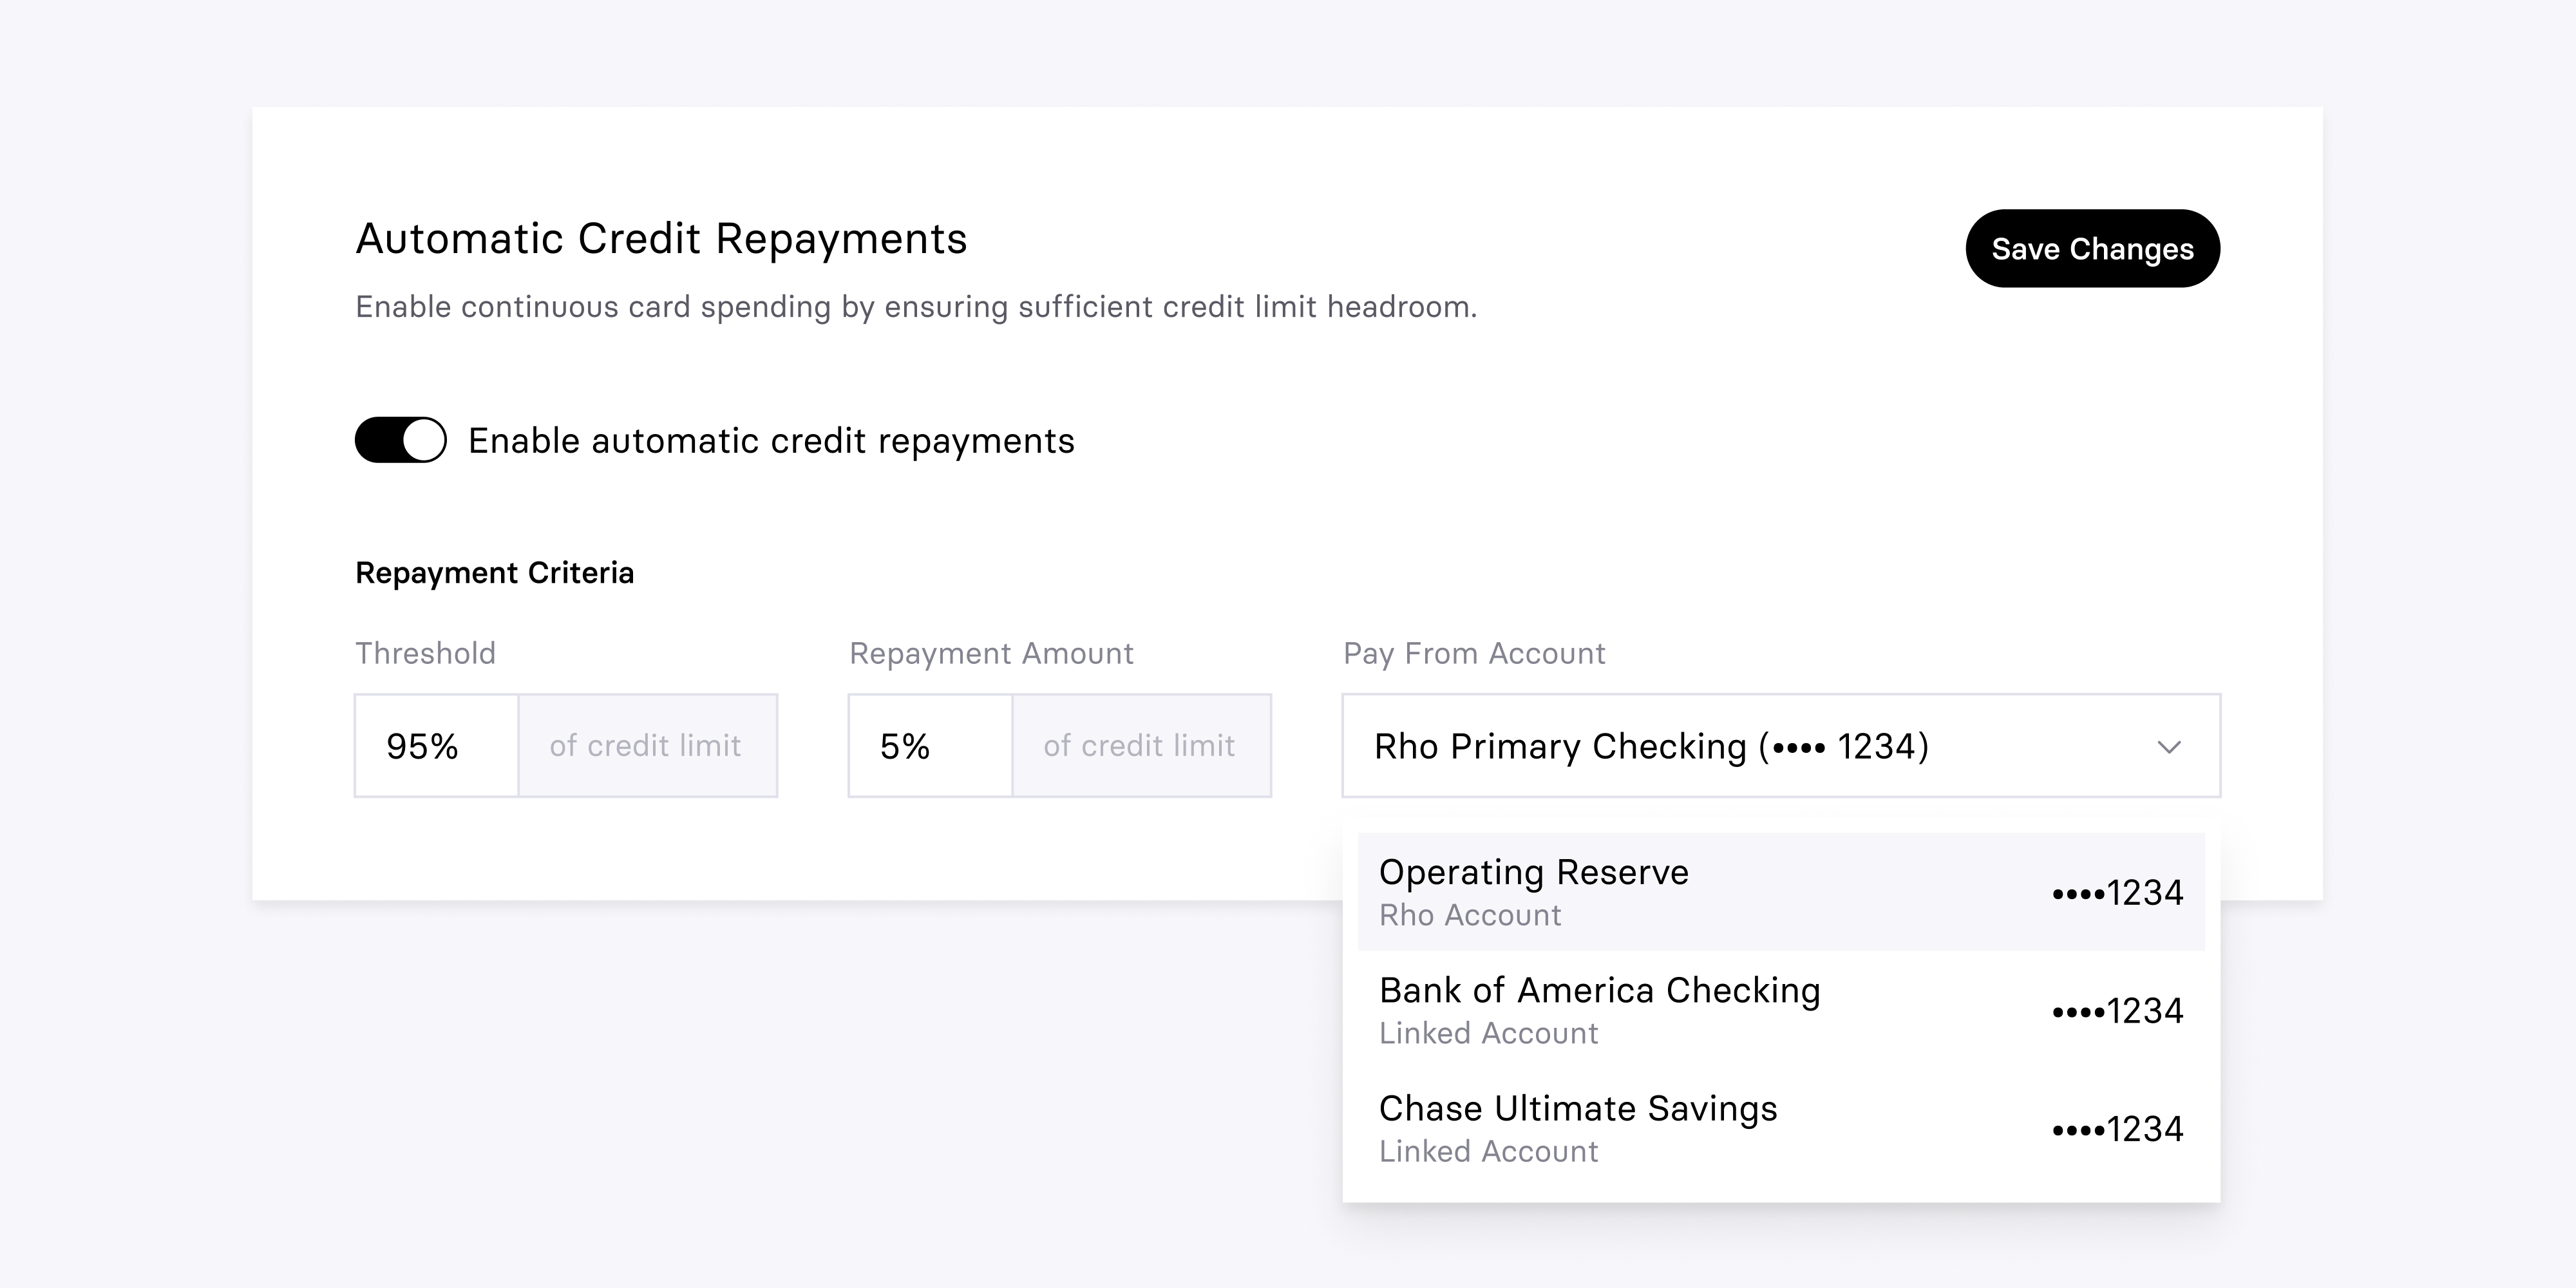 Introducing Rho's automatic interim credit repayments that empower continuous spending for your business by triggering a partial repayment of your balance as you near your credit limit.